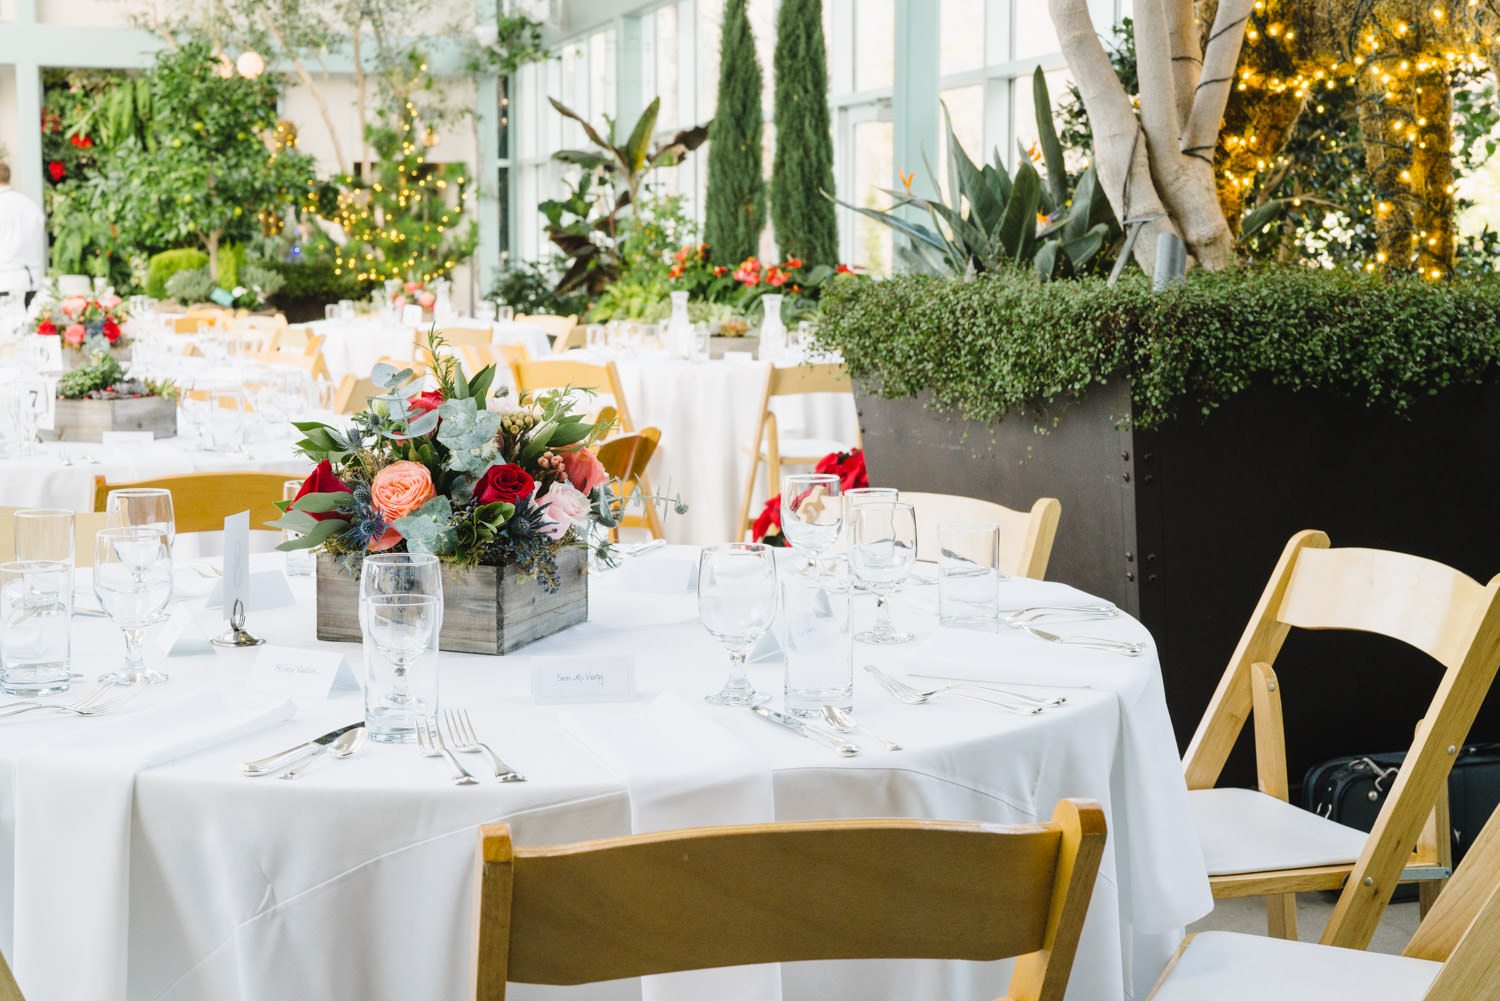 Red Butte Garden wedding reception dining table photo